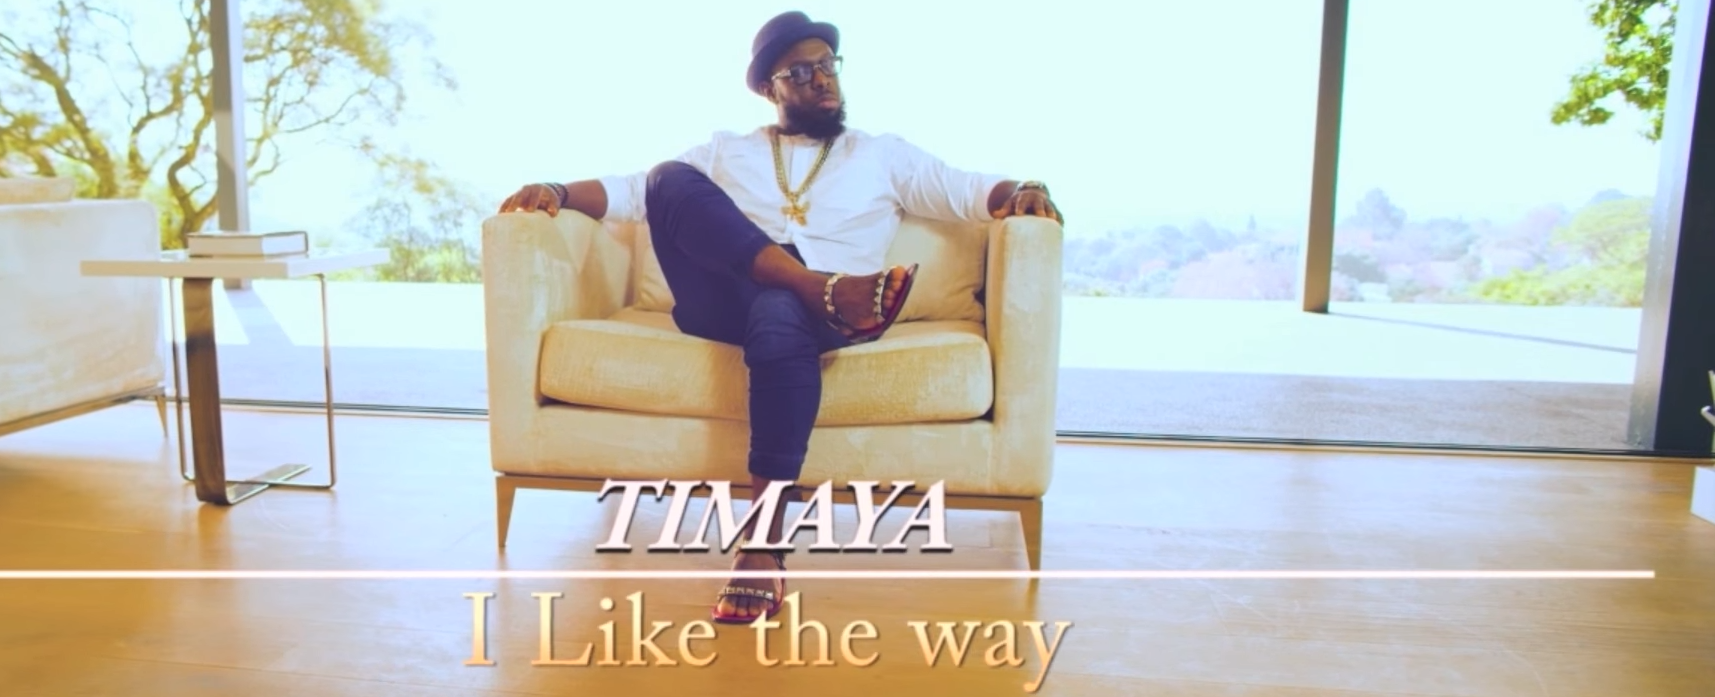 Timaya I Like The Way video